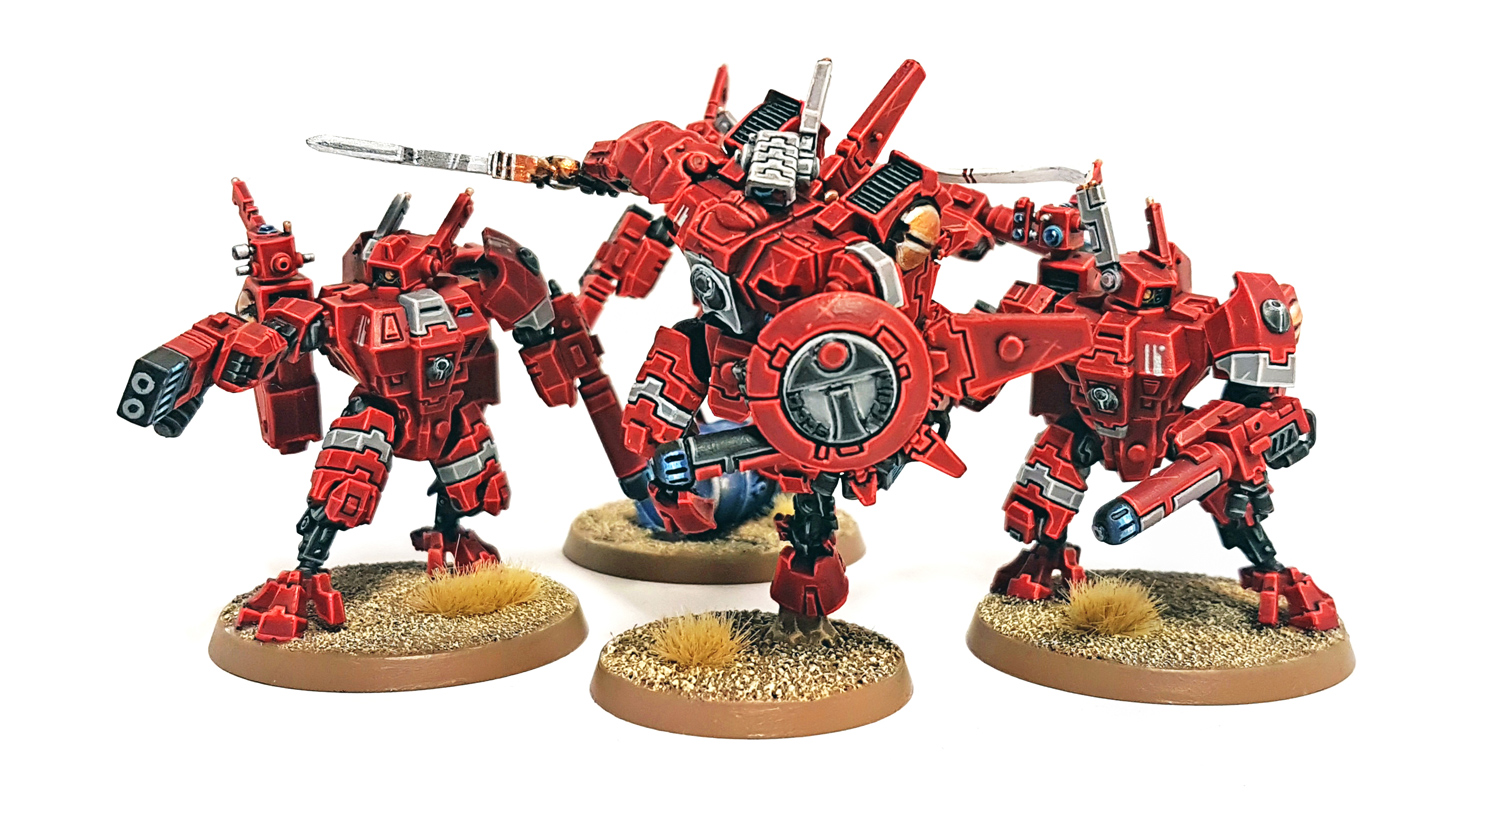 Deathhammer40k Warhammer 40,000 Commissions and Testimonials Tau Empire Project 2